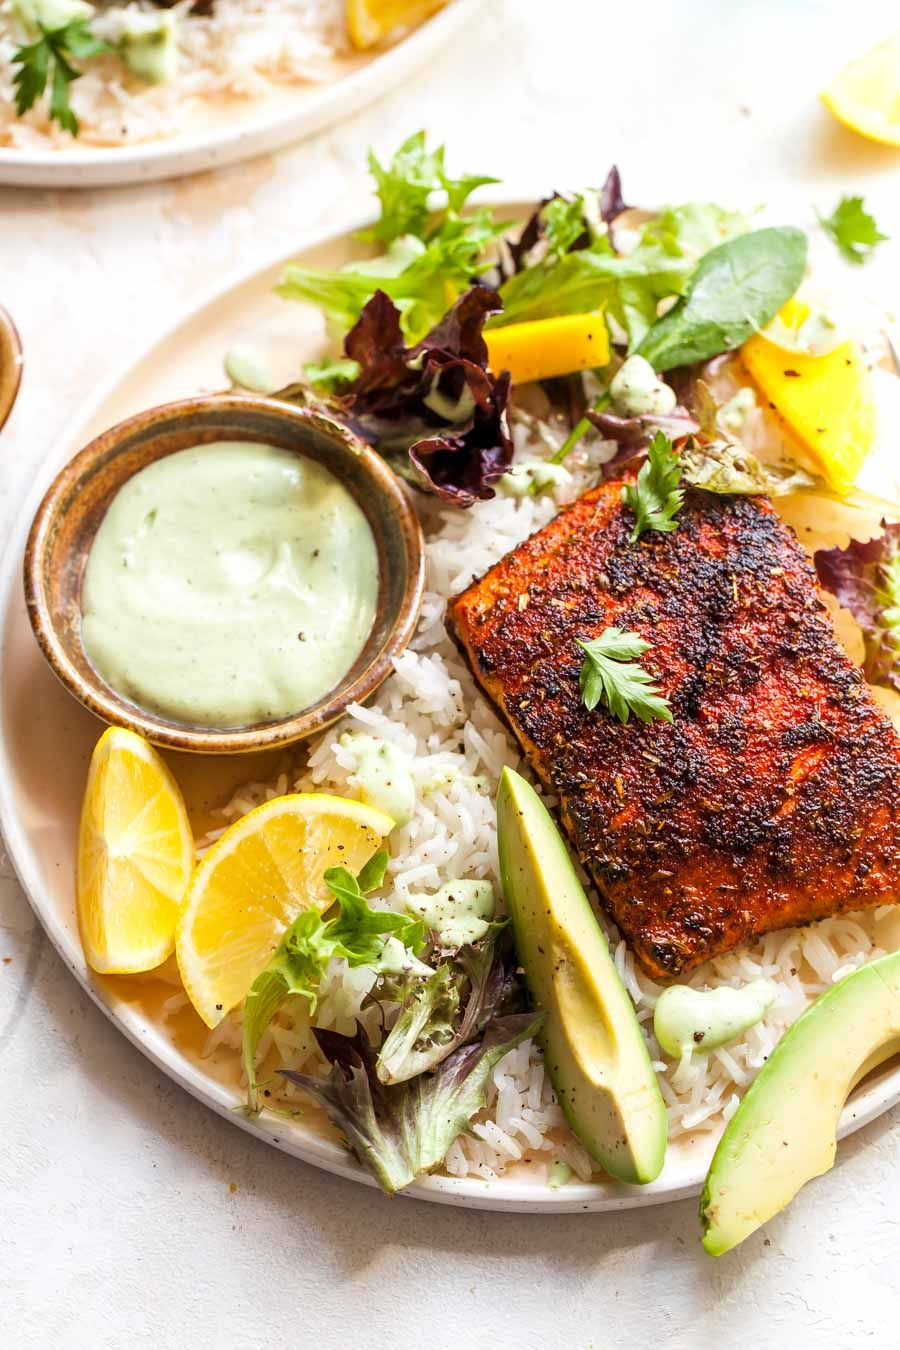 Blackened Salmon with Avocado Ranch